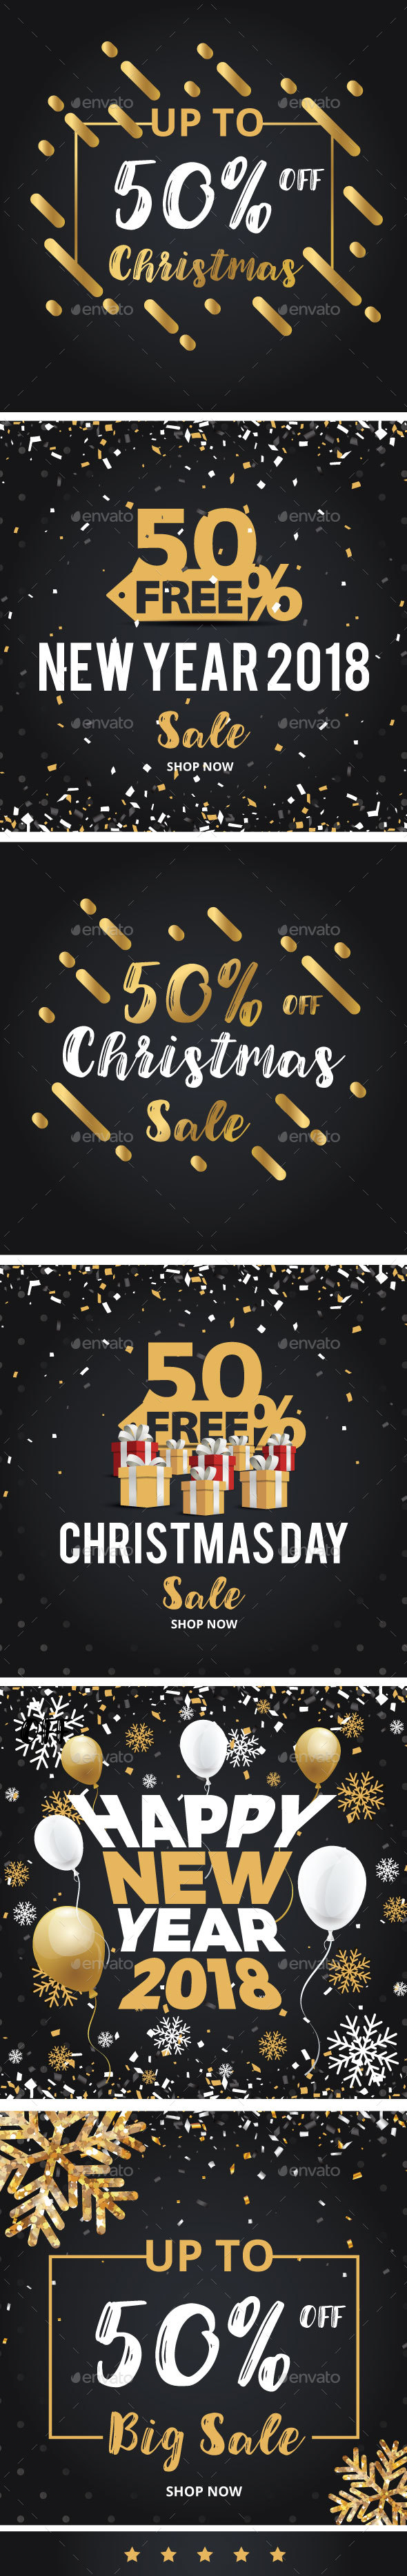 Happy Christmas and New Year Discount Sale Banners - Social Media Web Elements